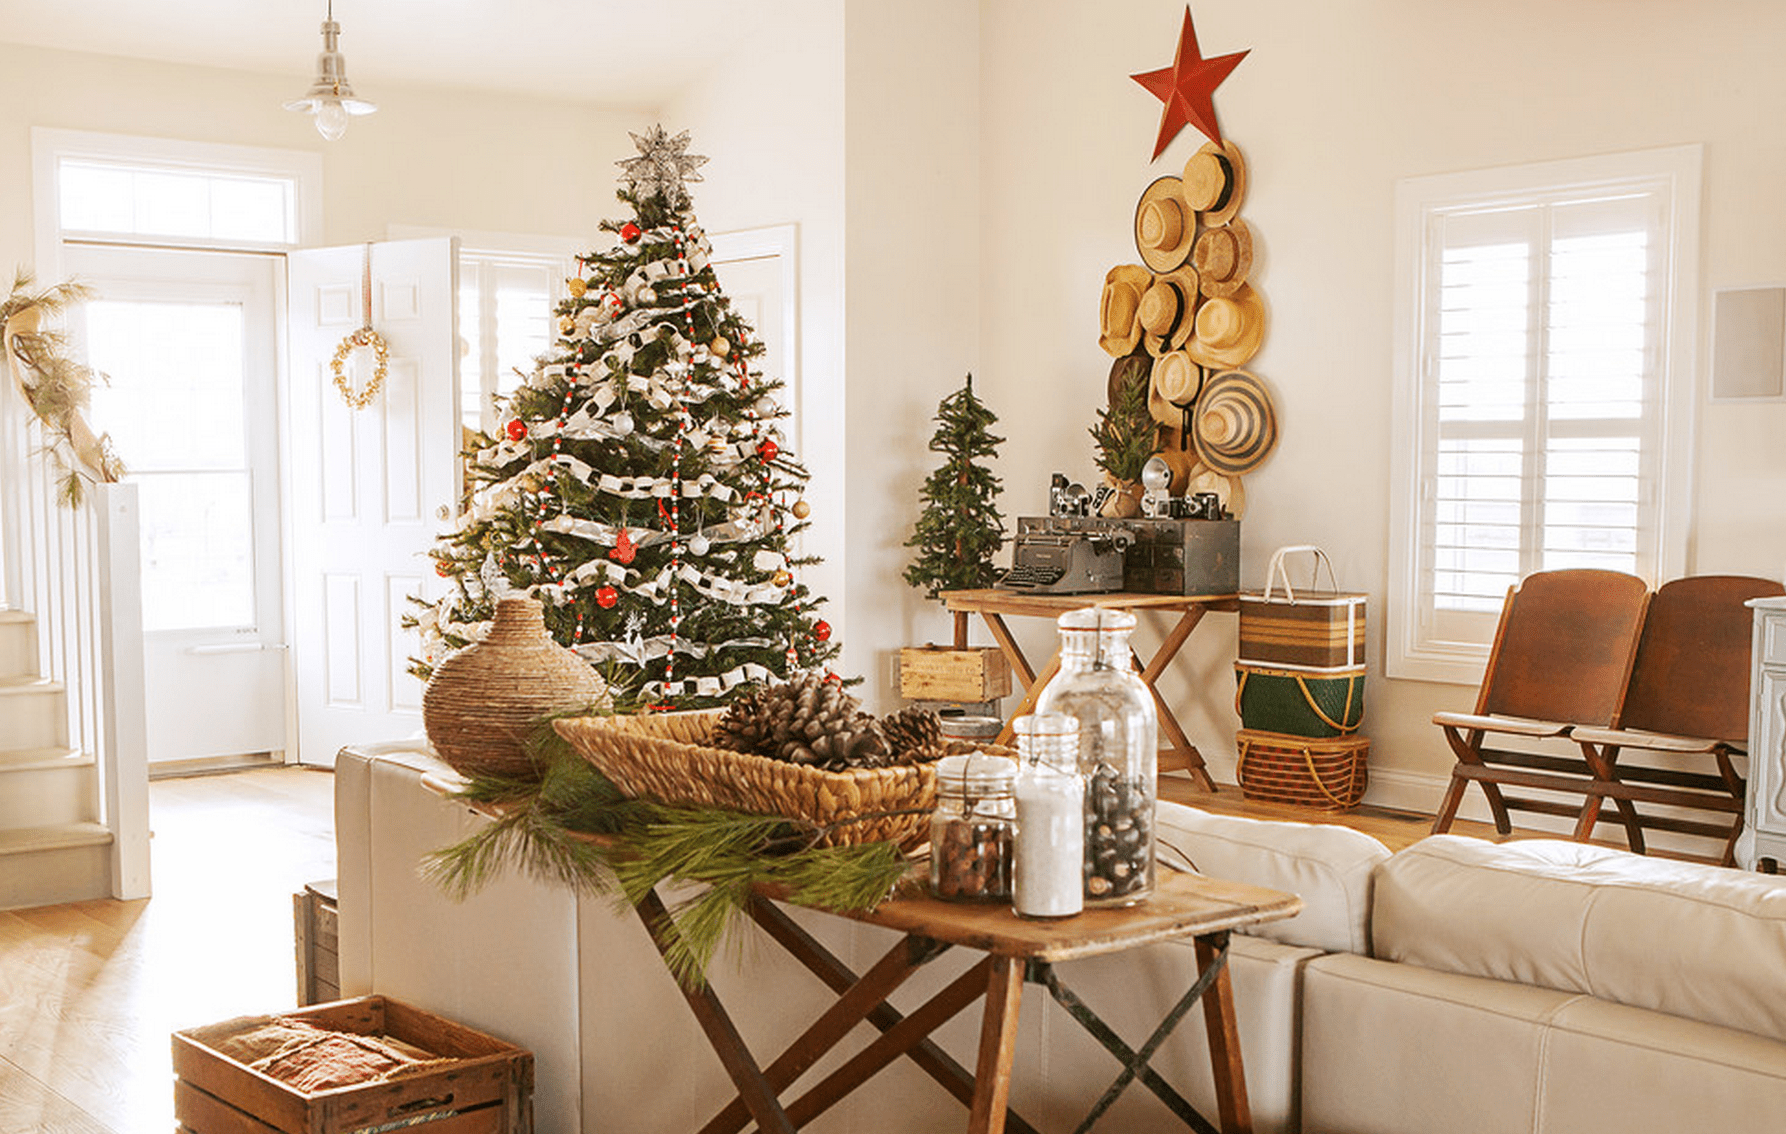 Color Outside The Lines Small Living Room Decorating Ideas: Try Decorating For Christmas With A Theme This Year